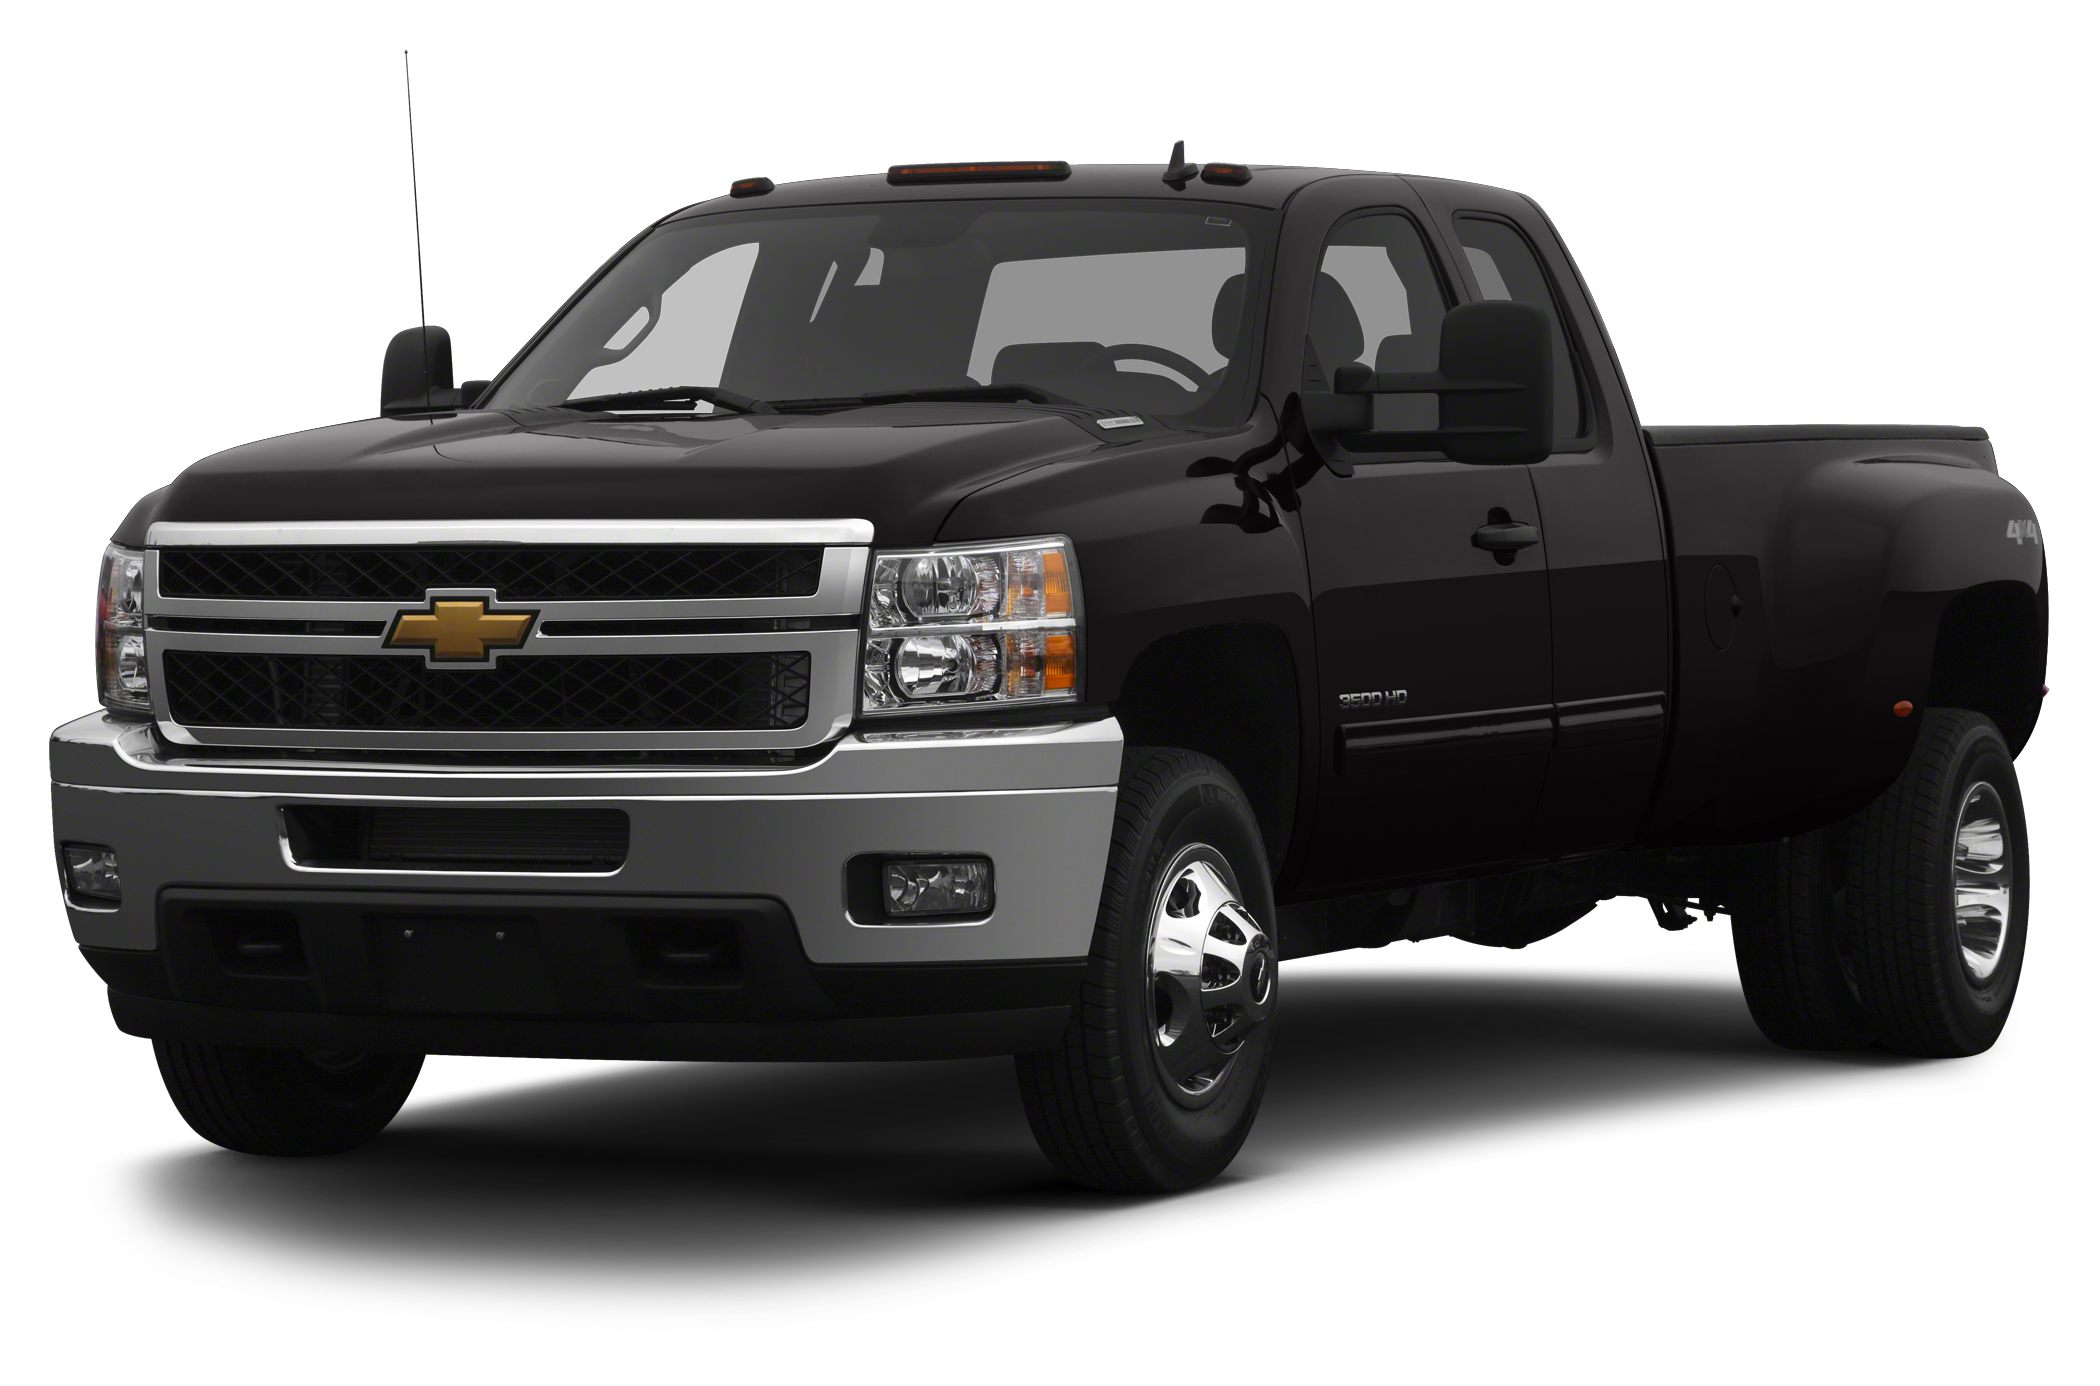 2013 Chevrolet Silverado 3500 LT Regular Cab Pickup for sale in Bryant for $34,289 with 53,944 miles.